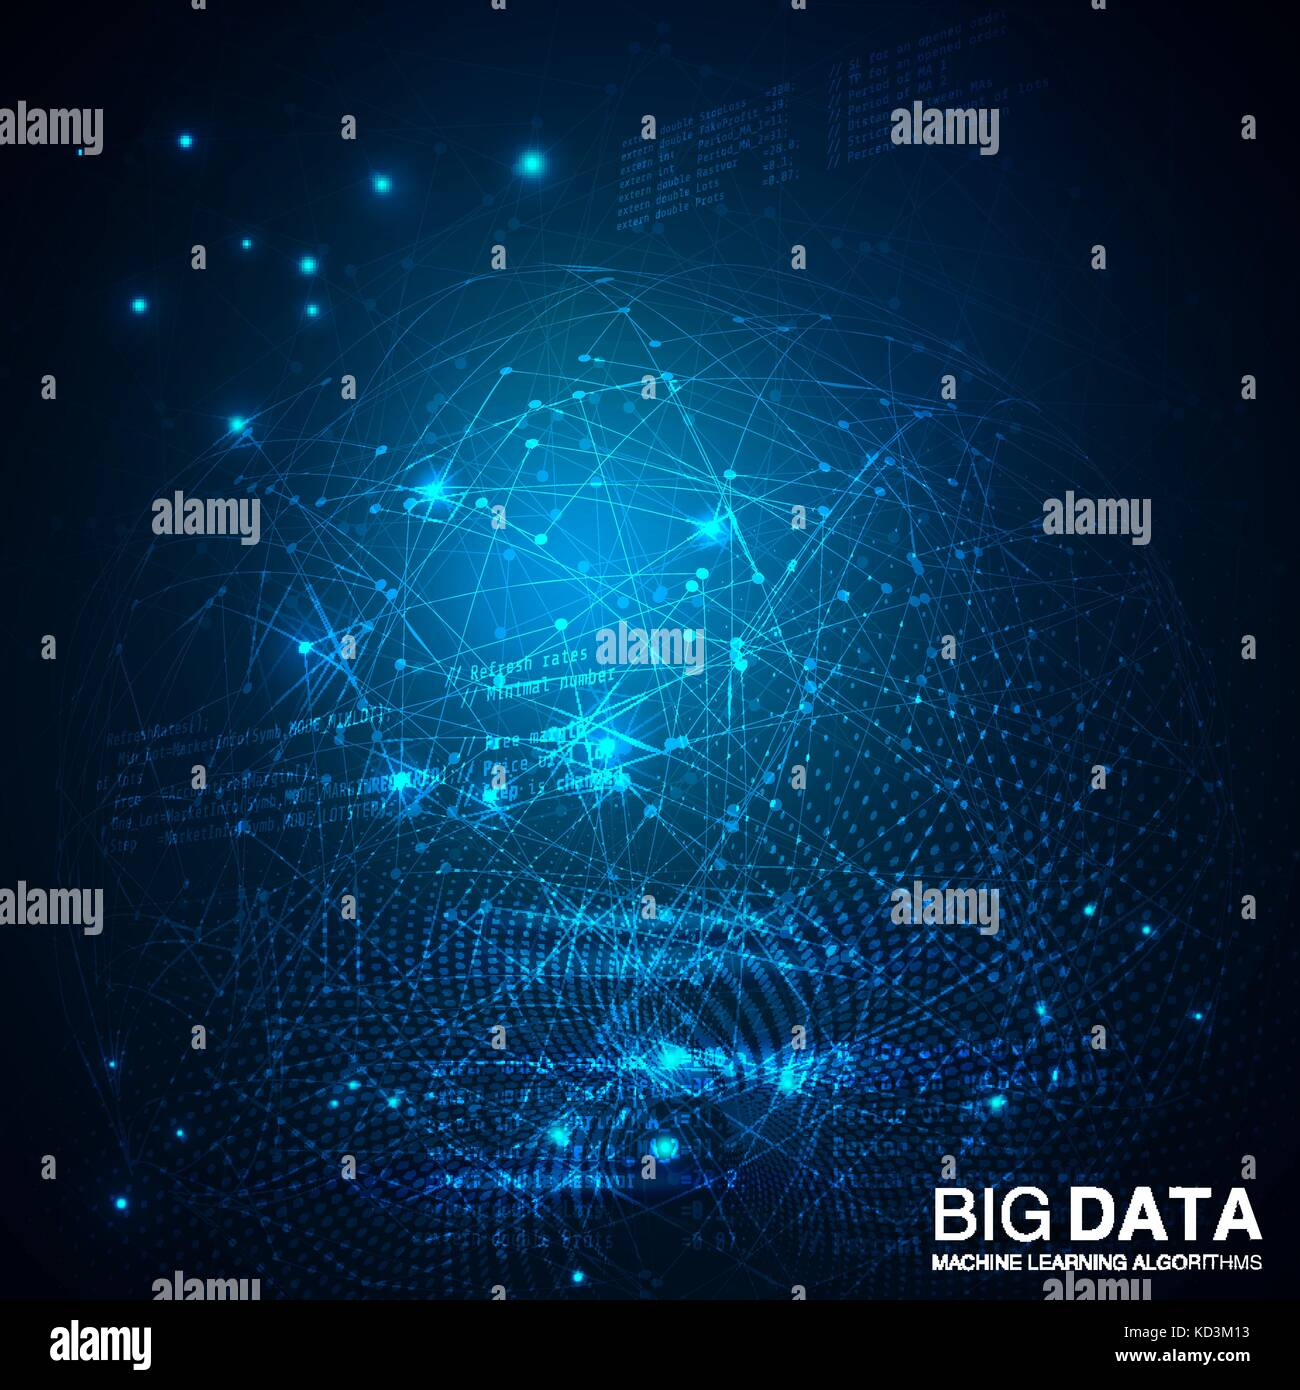 Big data visualization. Futuristic infographic. - Stock Image